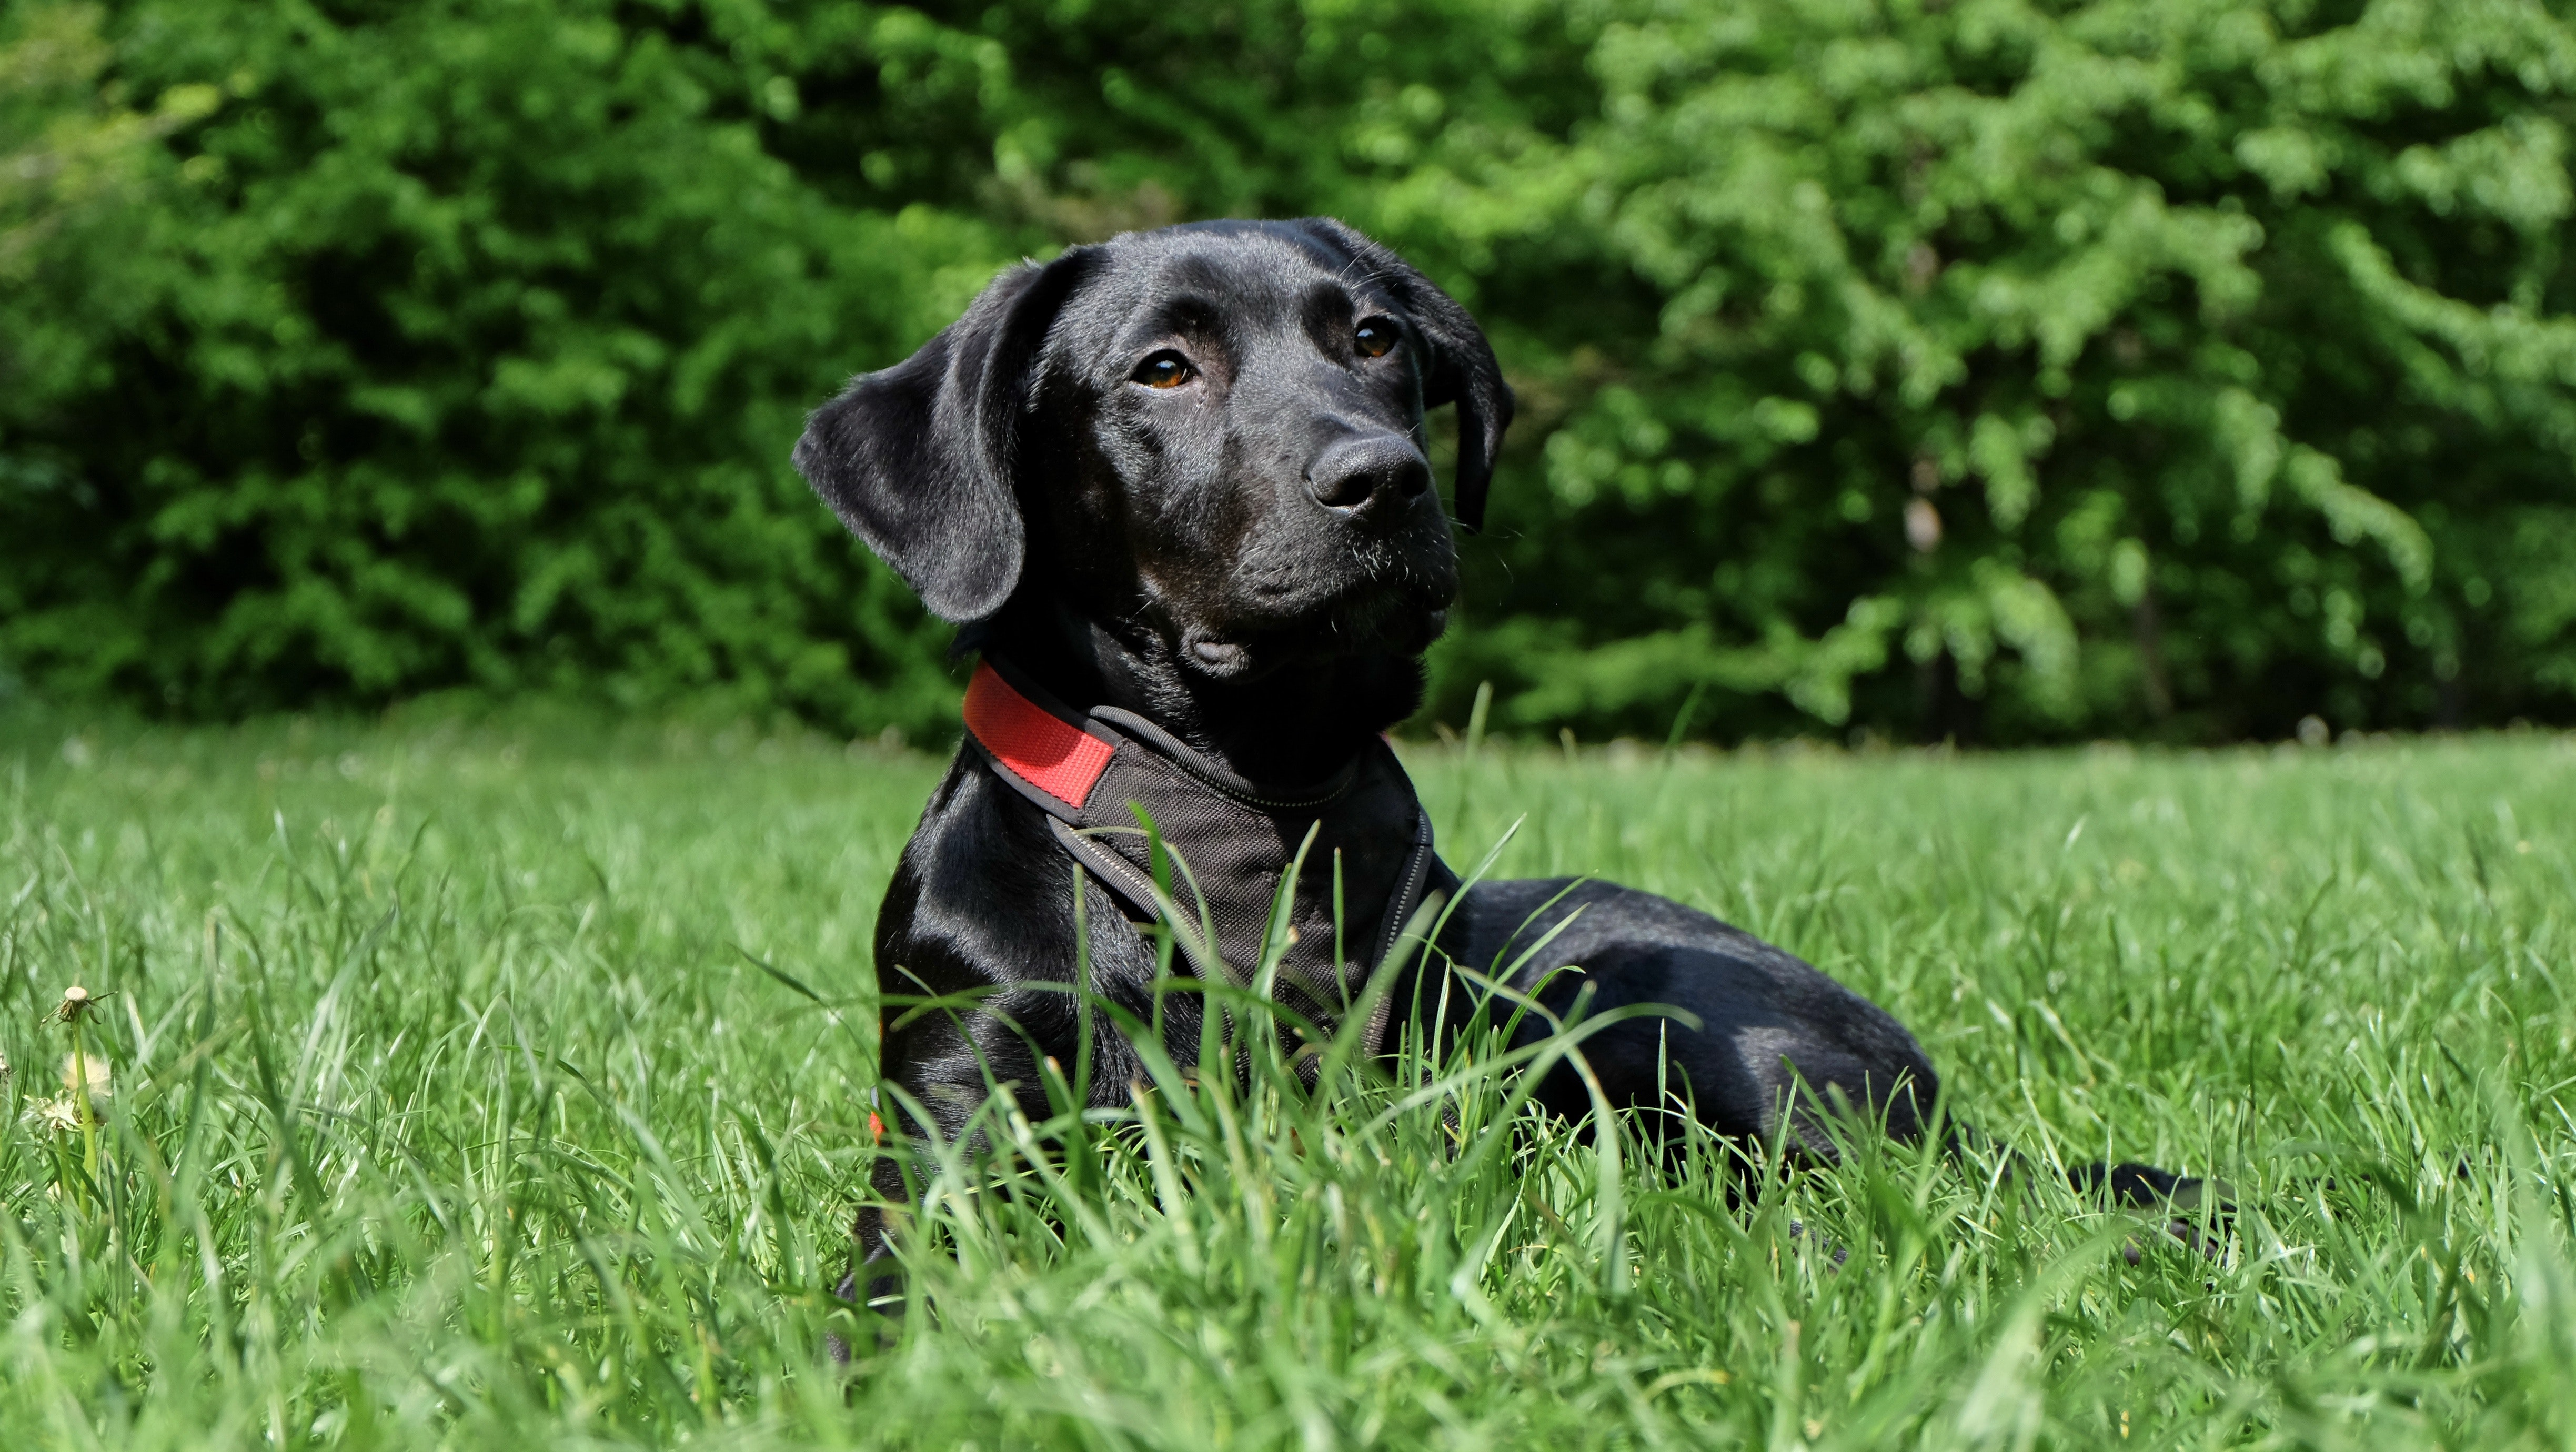 Black Labrador Retriever lying outdoors in the grass with trees in the background.